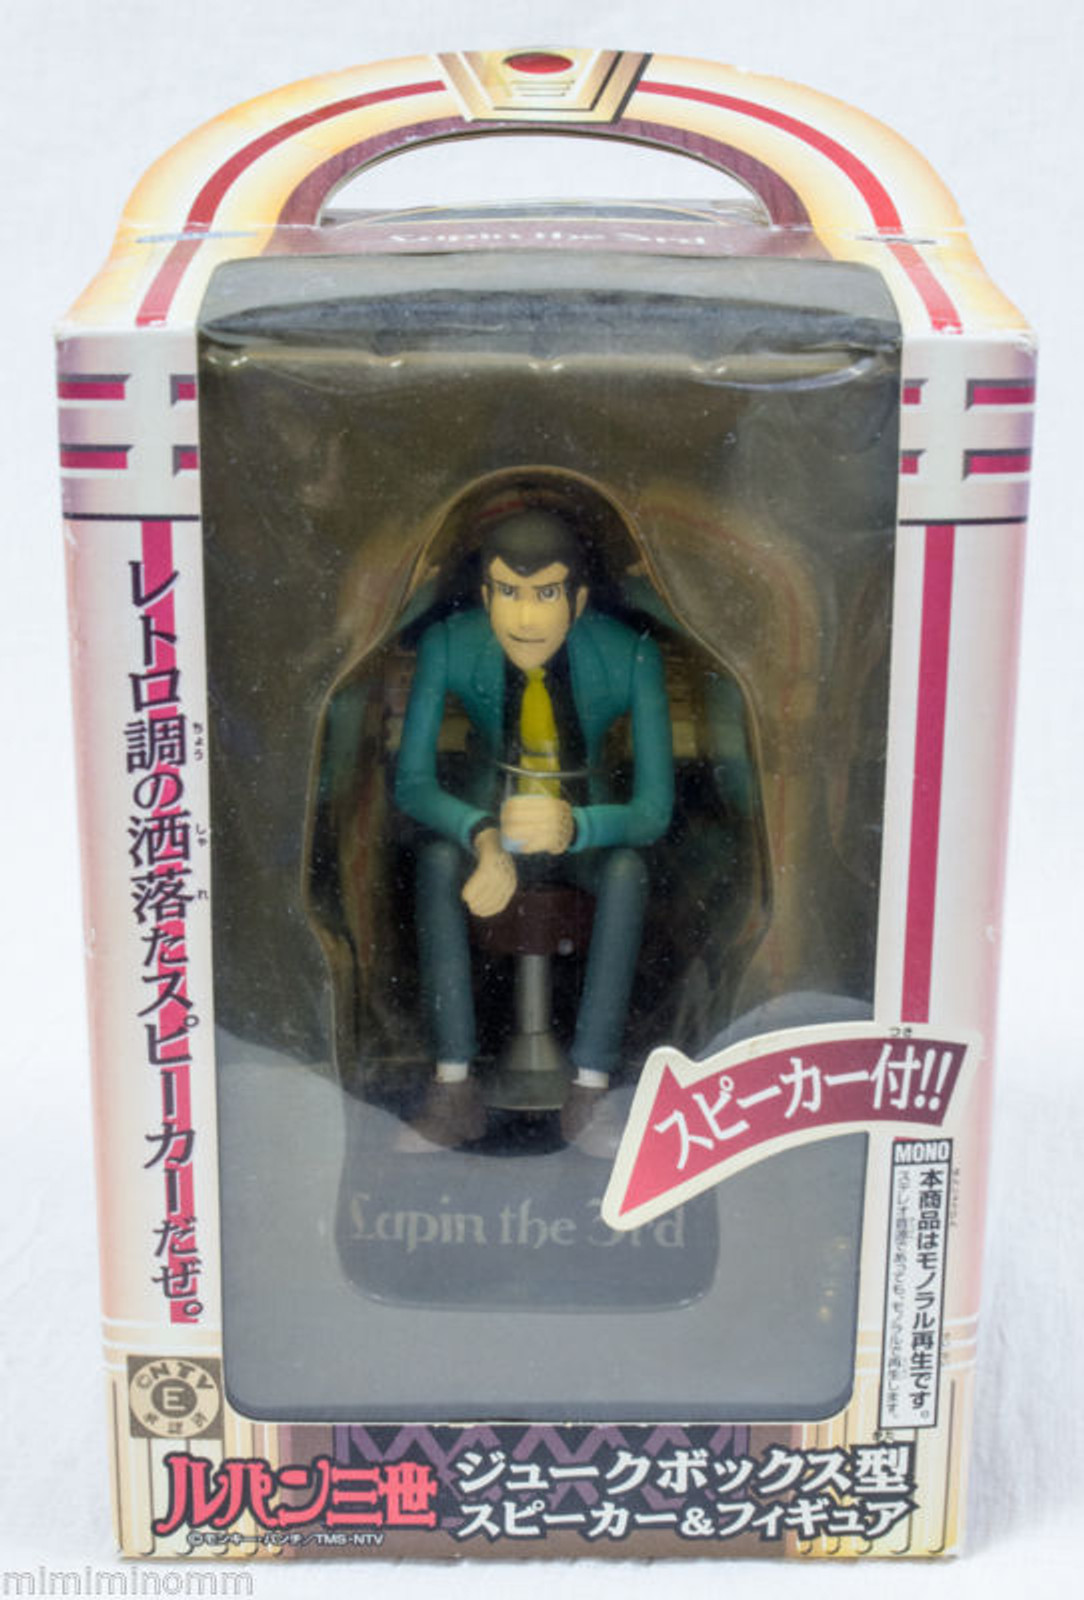 Lupin the Third (3rd) Lupin Jukebox Type Speaker & Figure Banpresto JAPAN ANIME 2